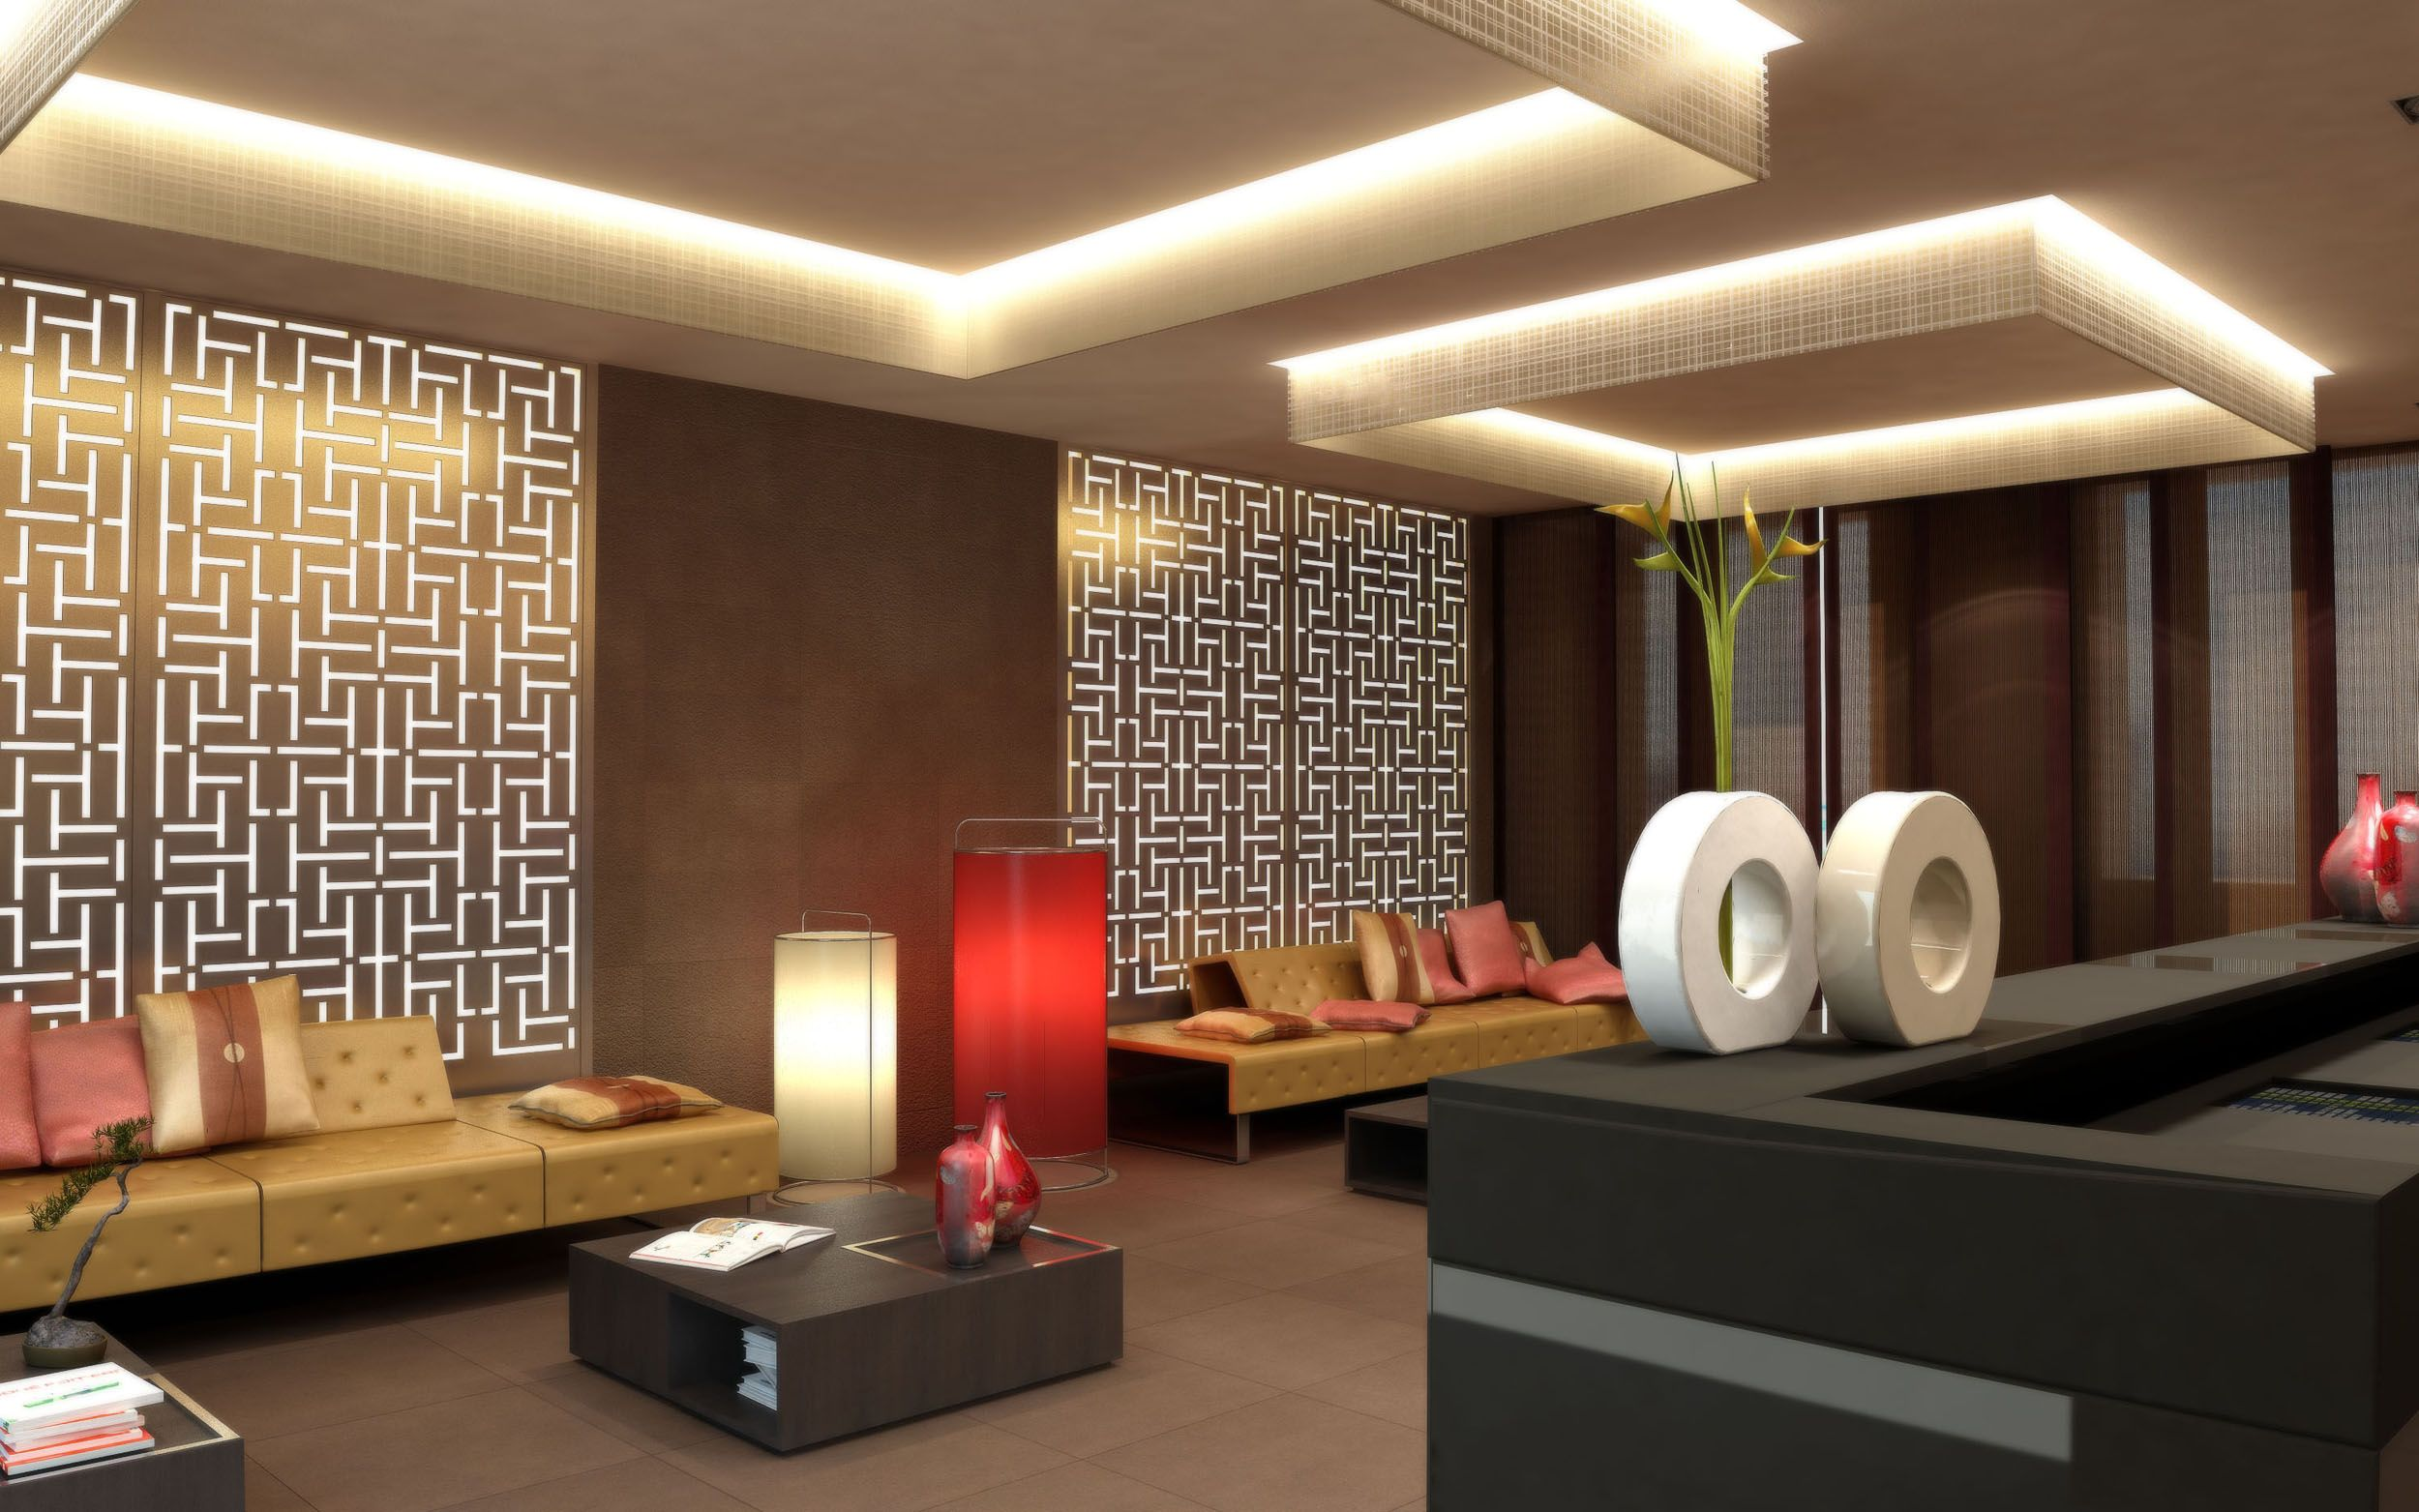 Chinese interior design images chinese interior design for Interior designs photos